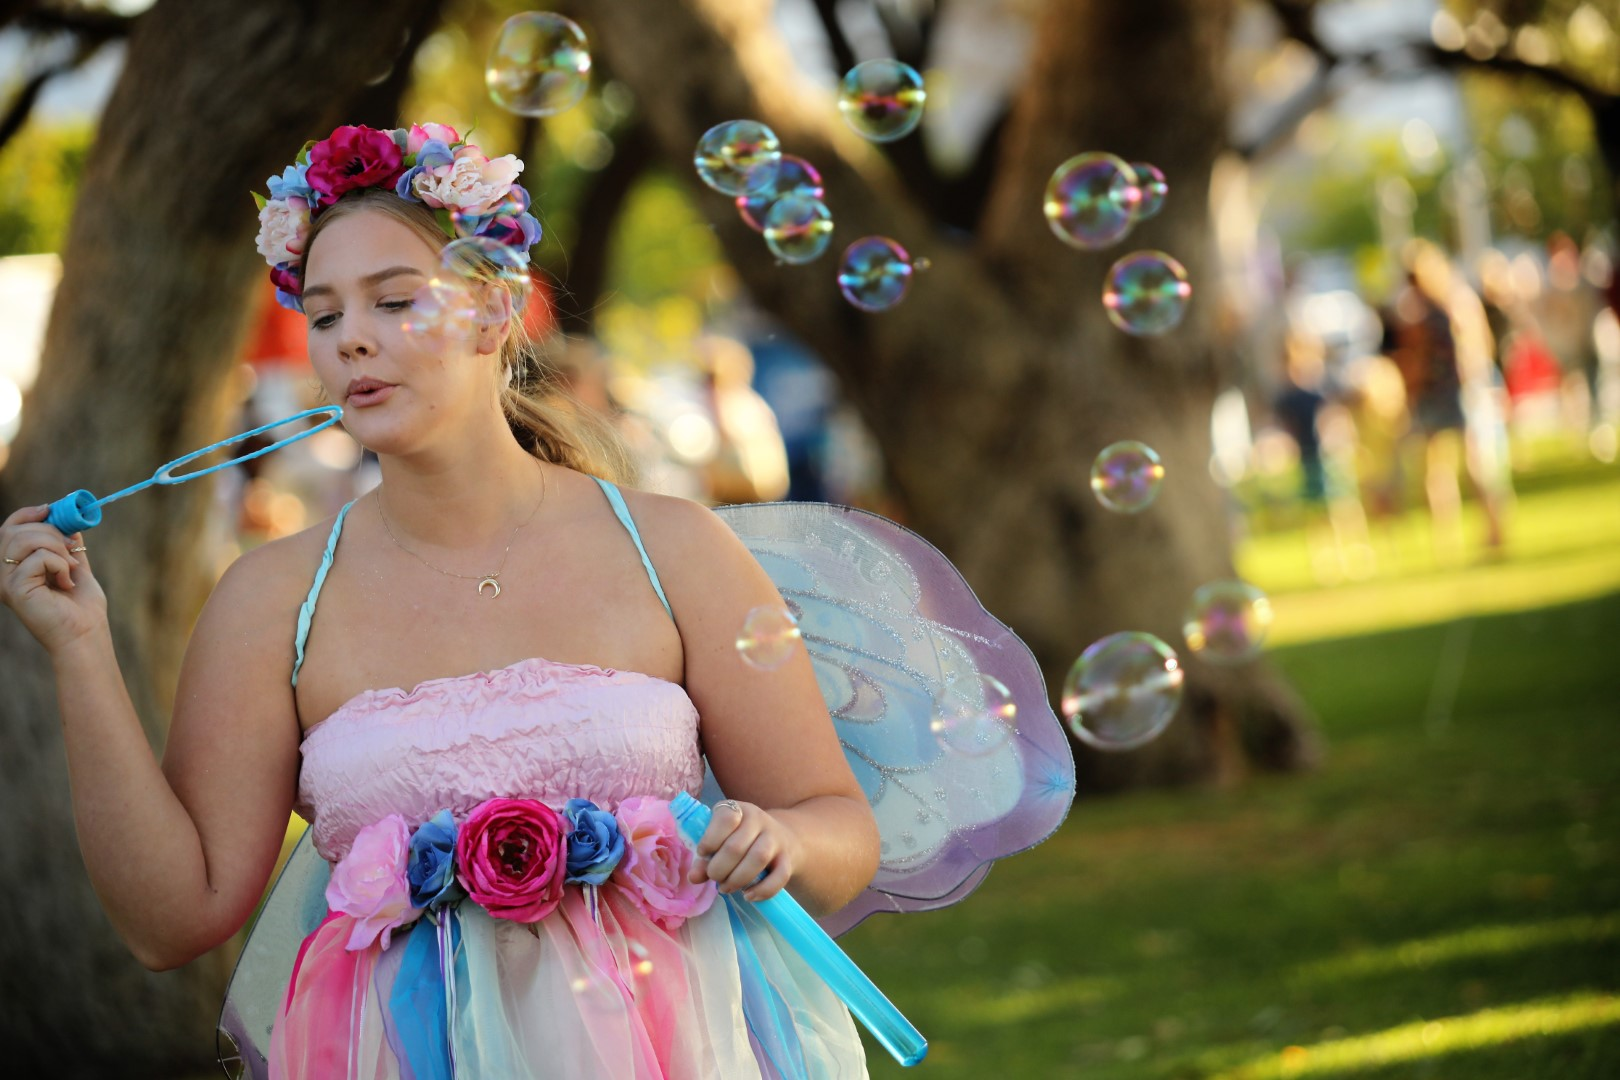 Young lady blowing bubbles for an event